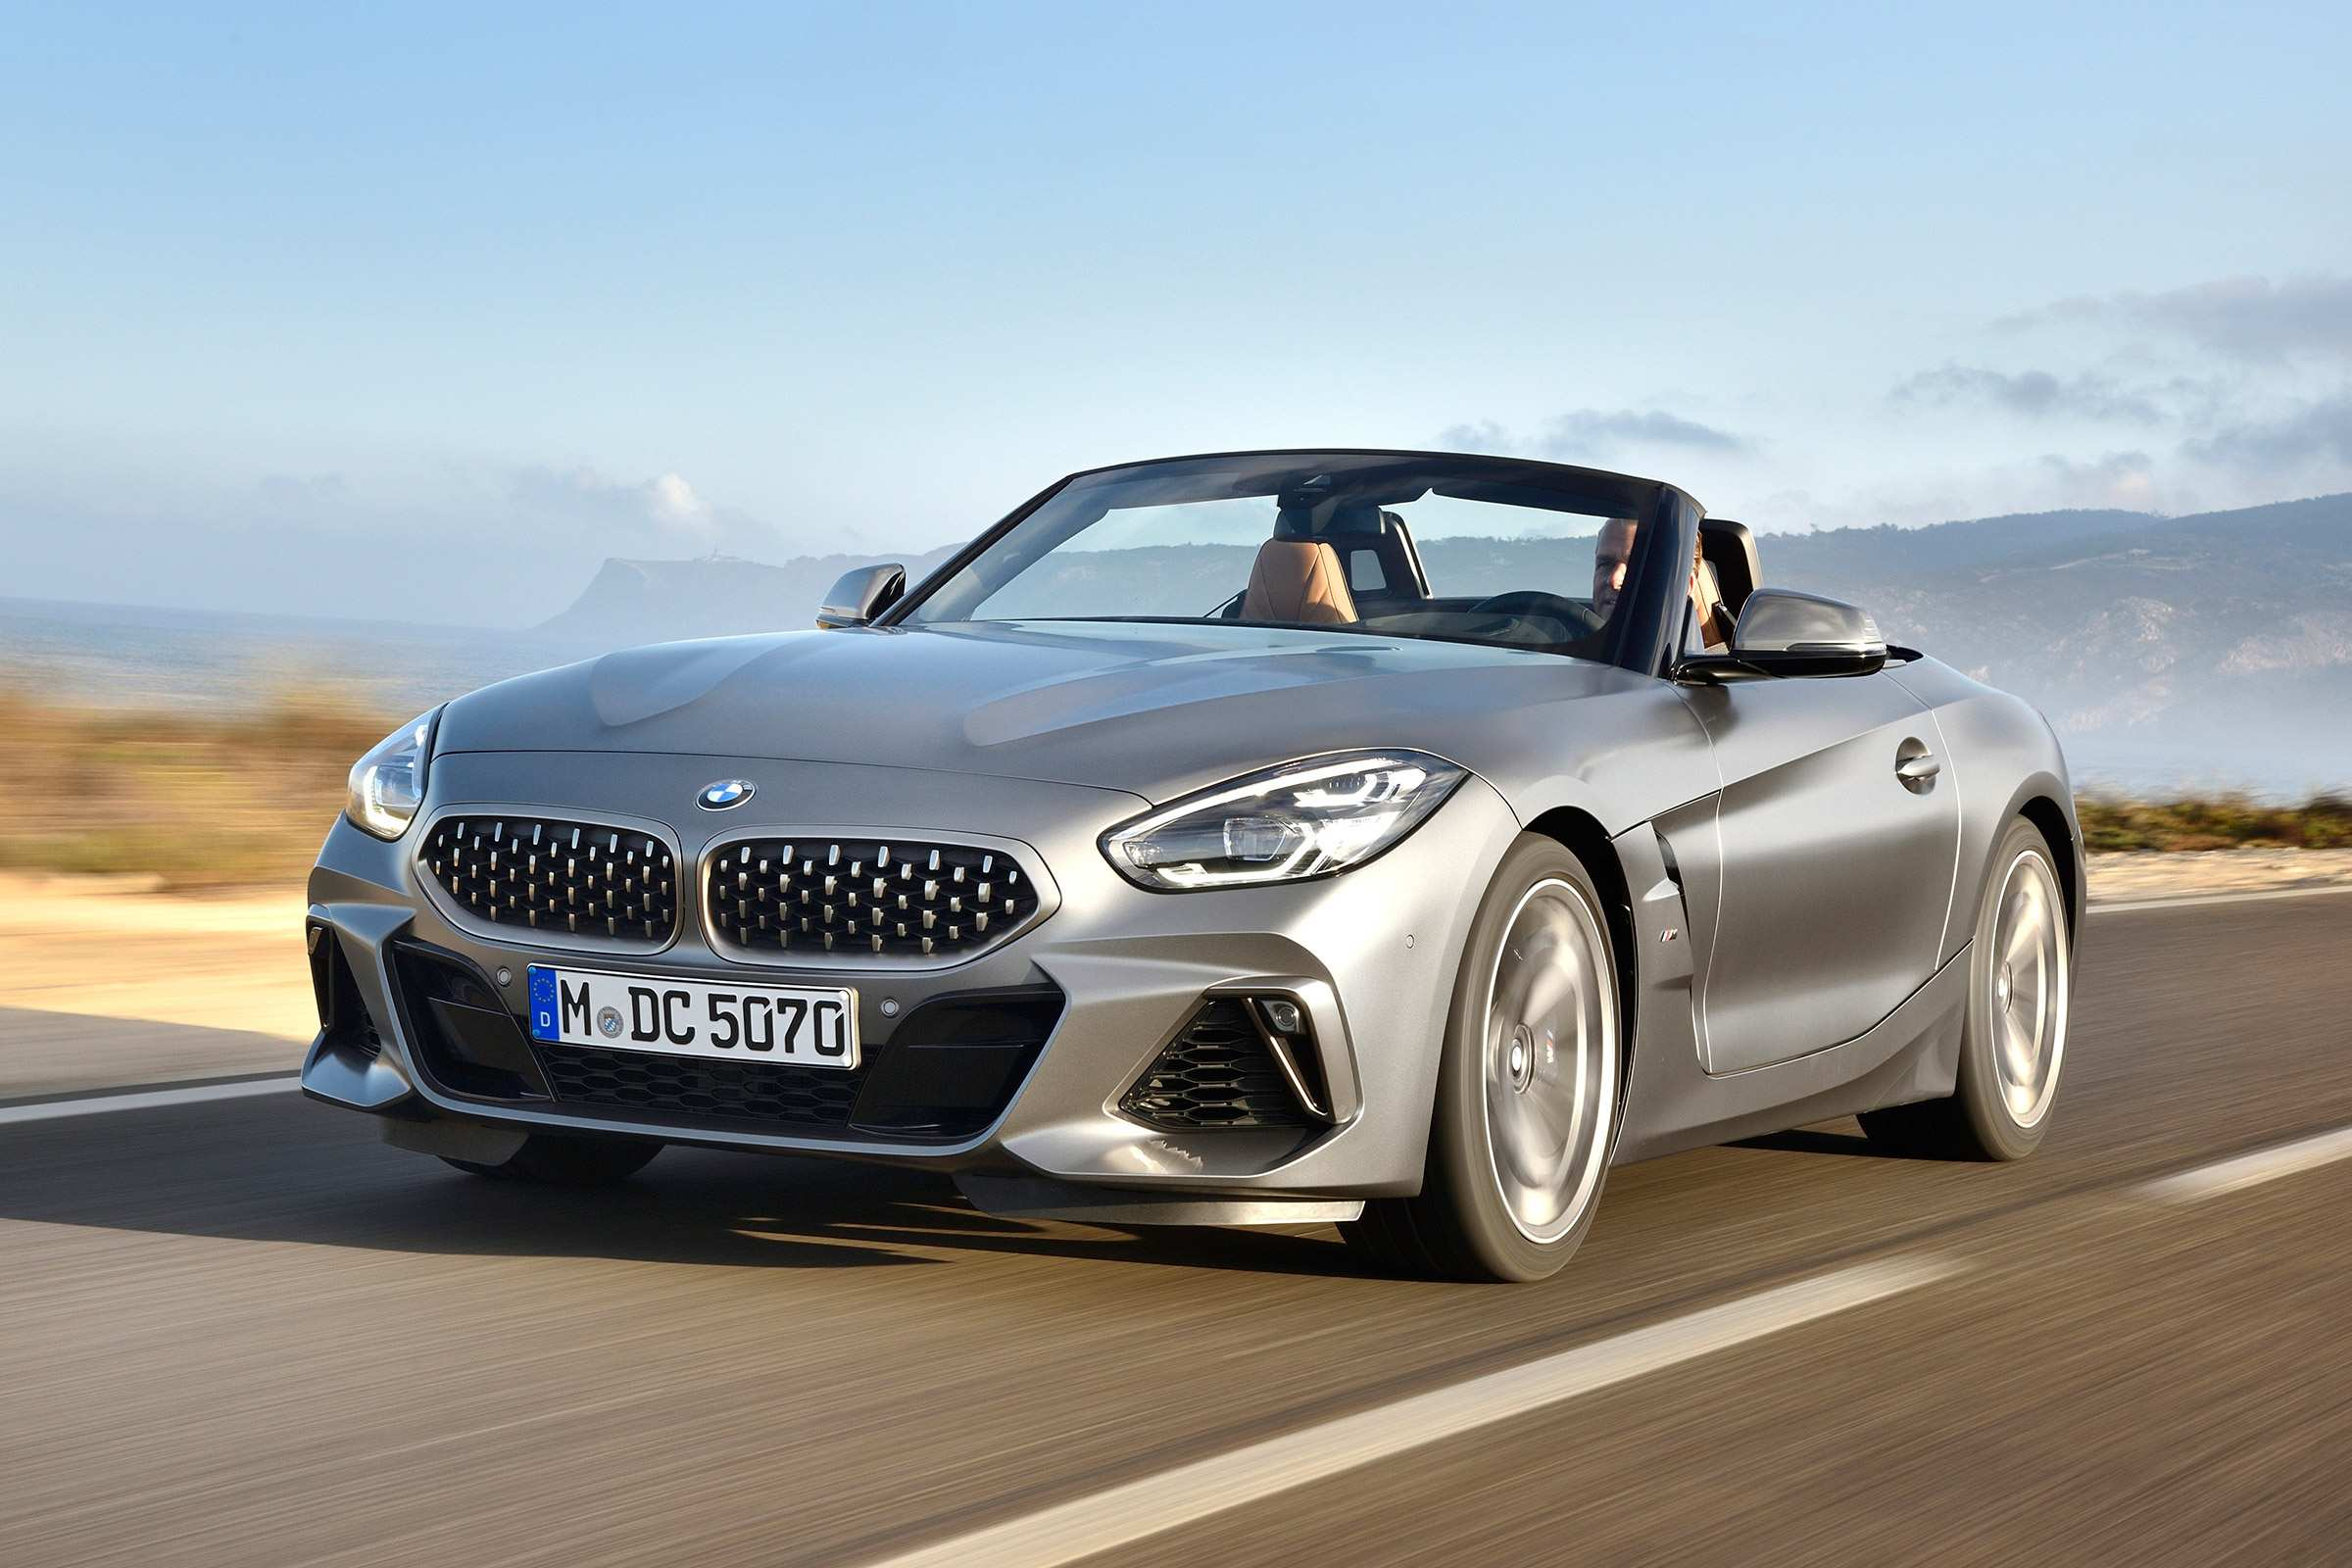 52 Best Review The Bmw 2019 Z4 Dimensions Specs And Review Configurations with The Bmw 2019 Z4 Dimensions Specs And Review